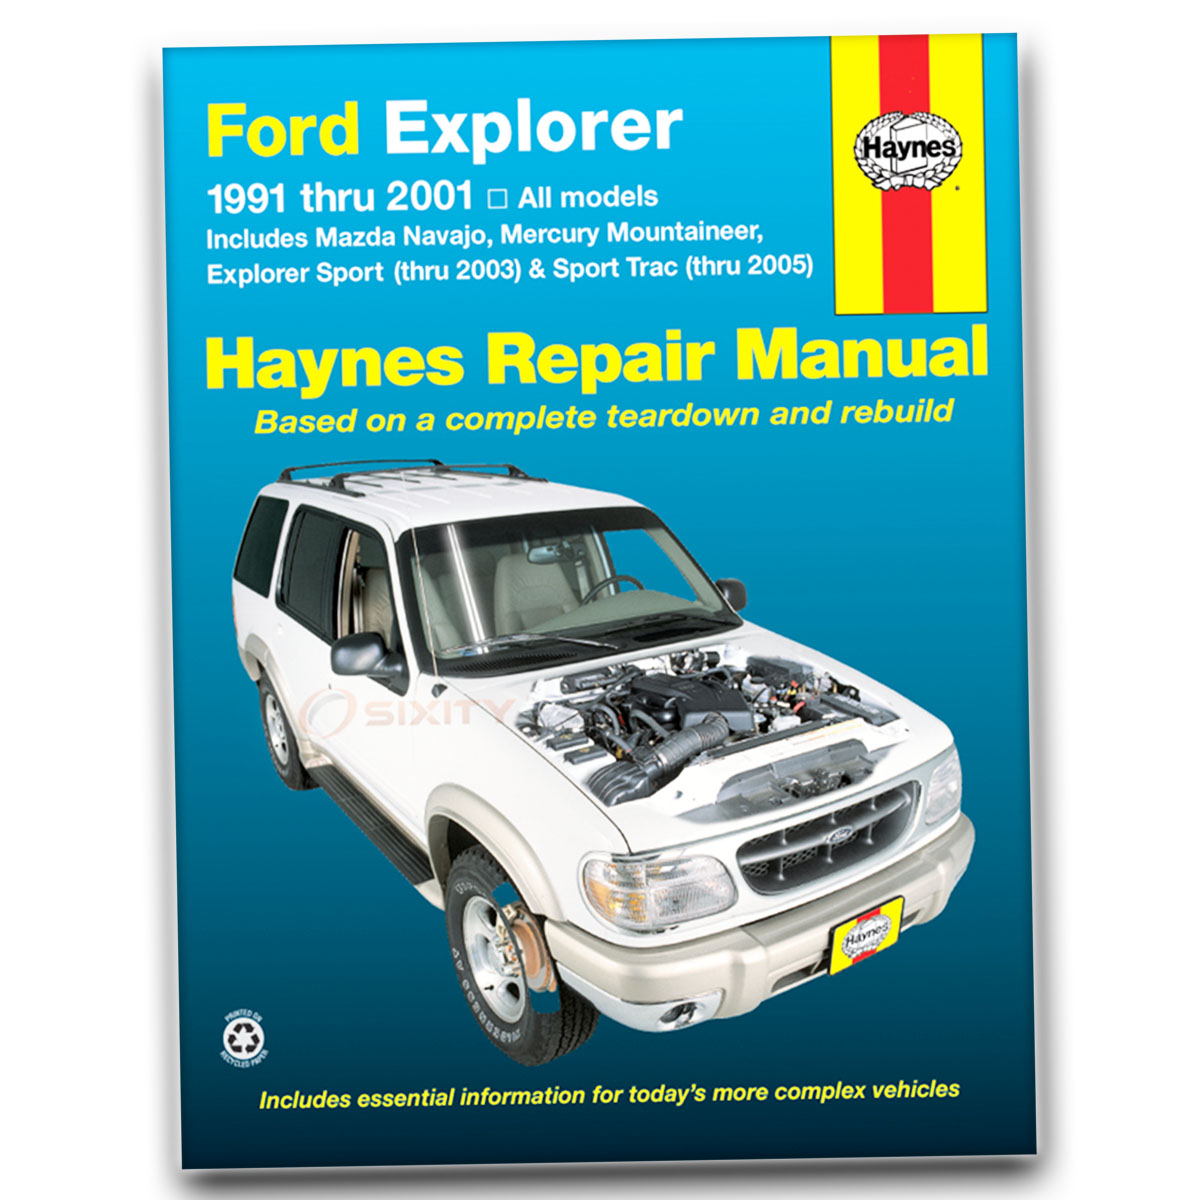 Haynes Repair Manual For 2001